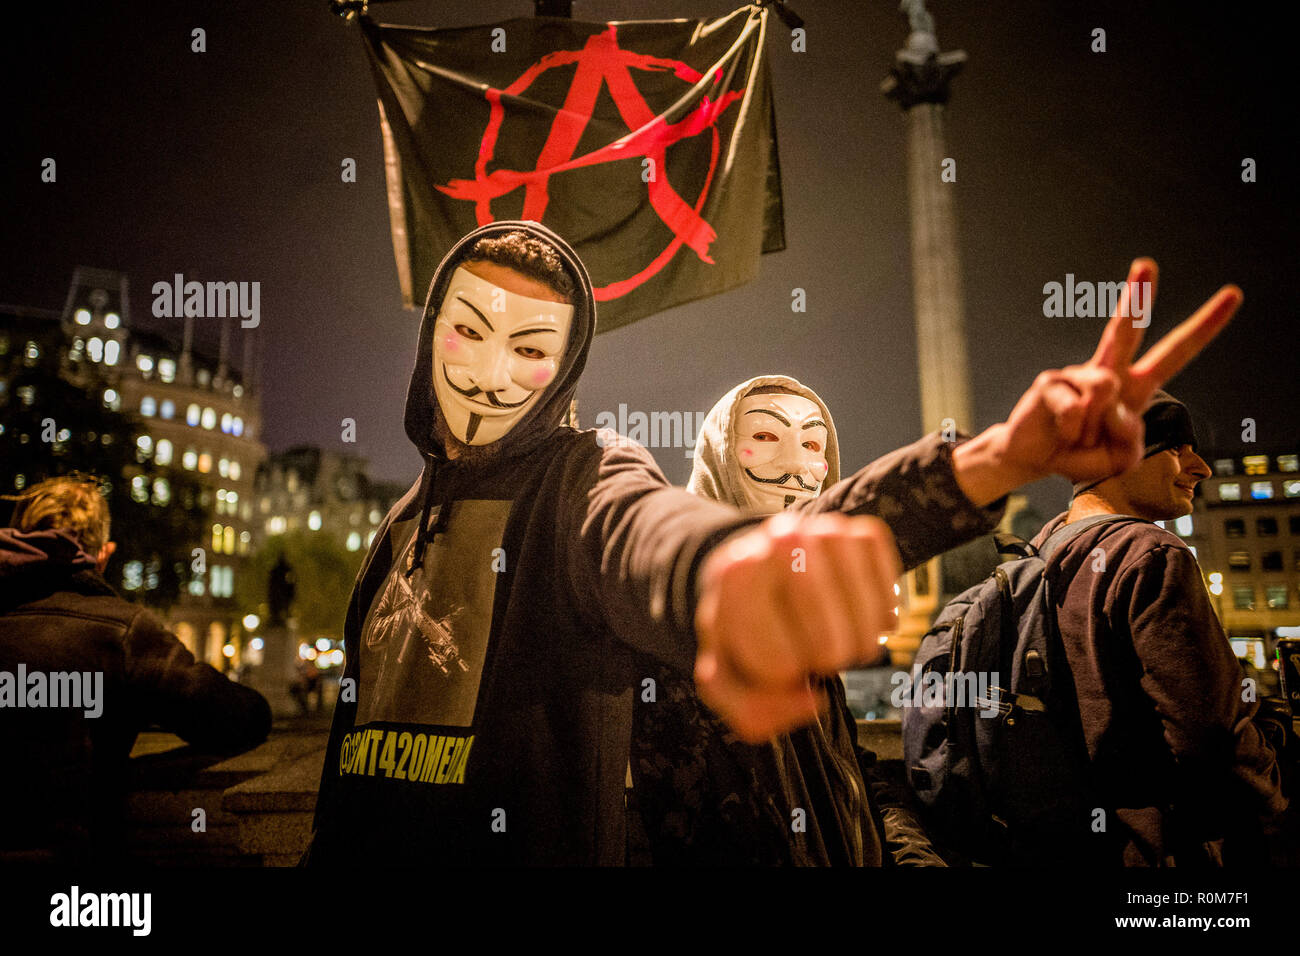 https://c7.alamy.com/comp/R0M7F1/hundreds-of-protesters-wearing-guy-fawkes-masks-gathered-in-london-for-their-annual-march-promoted-by-anonymous-an-international-group-of-hacking-activists-the-march-is-a-protest-against-corruption-in-power-it-coincides-with-bonfire-night-in-the-uk-which-commemorates-the-date-guy-fawkes-attempted-to-blow-up-the-houses-of-parliament-in-1605-5th-nov-2018-credit-velar-grantzuma-wirealamy-live-news-R0M7F1.jpg